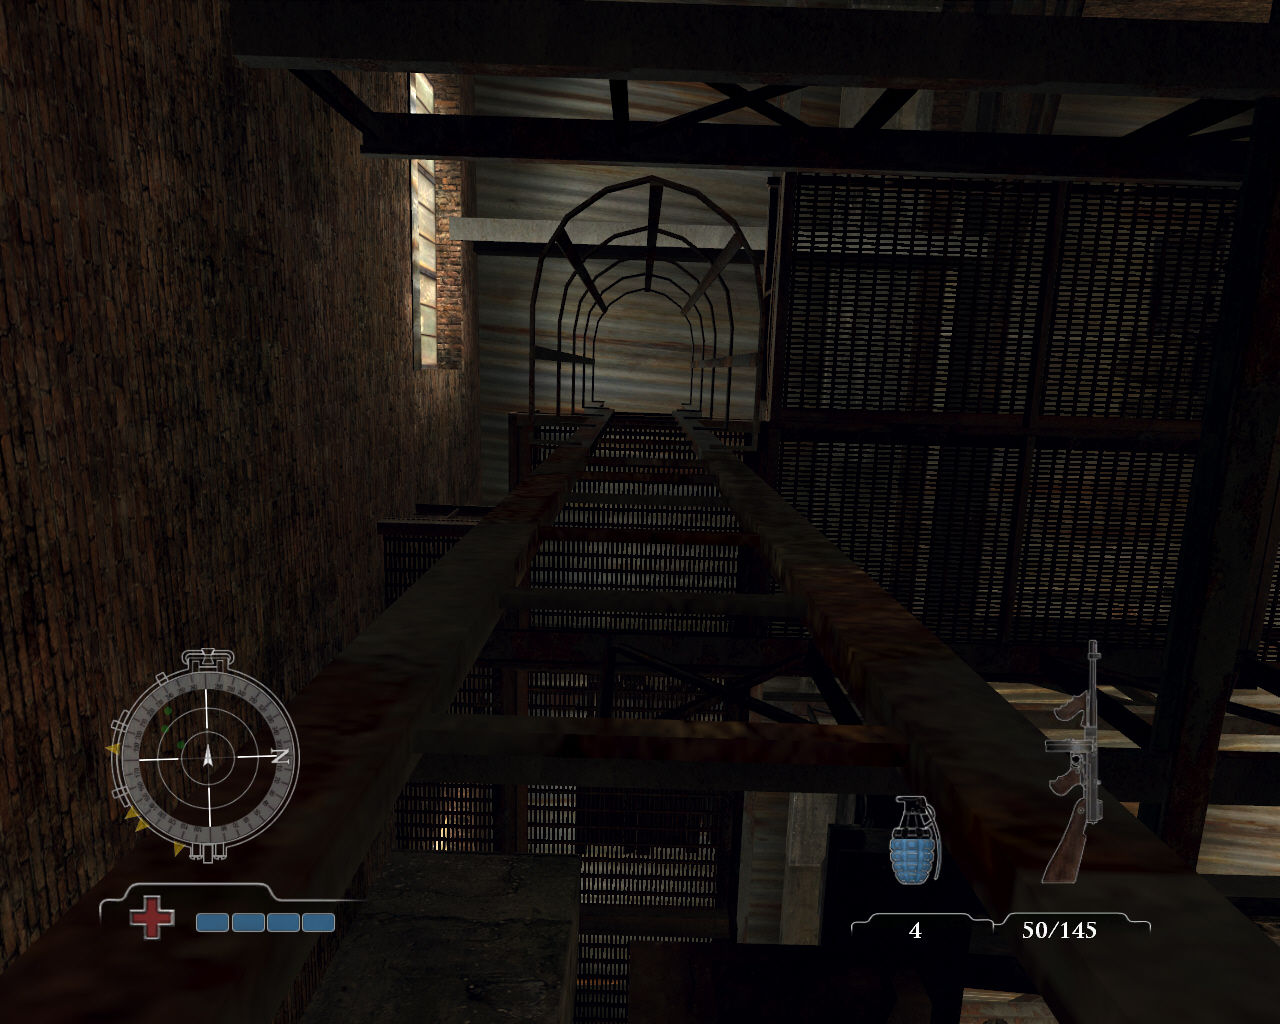 Medal of Honor: Airborne Windows Climbing ladder.